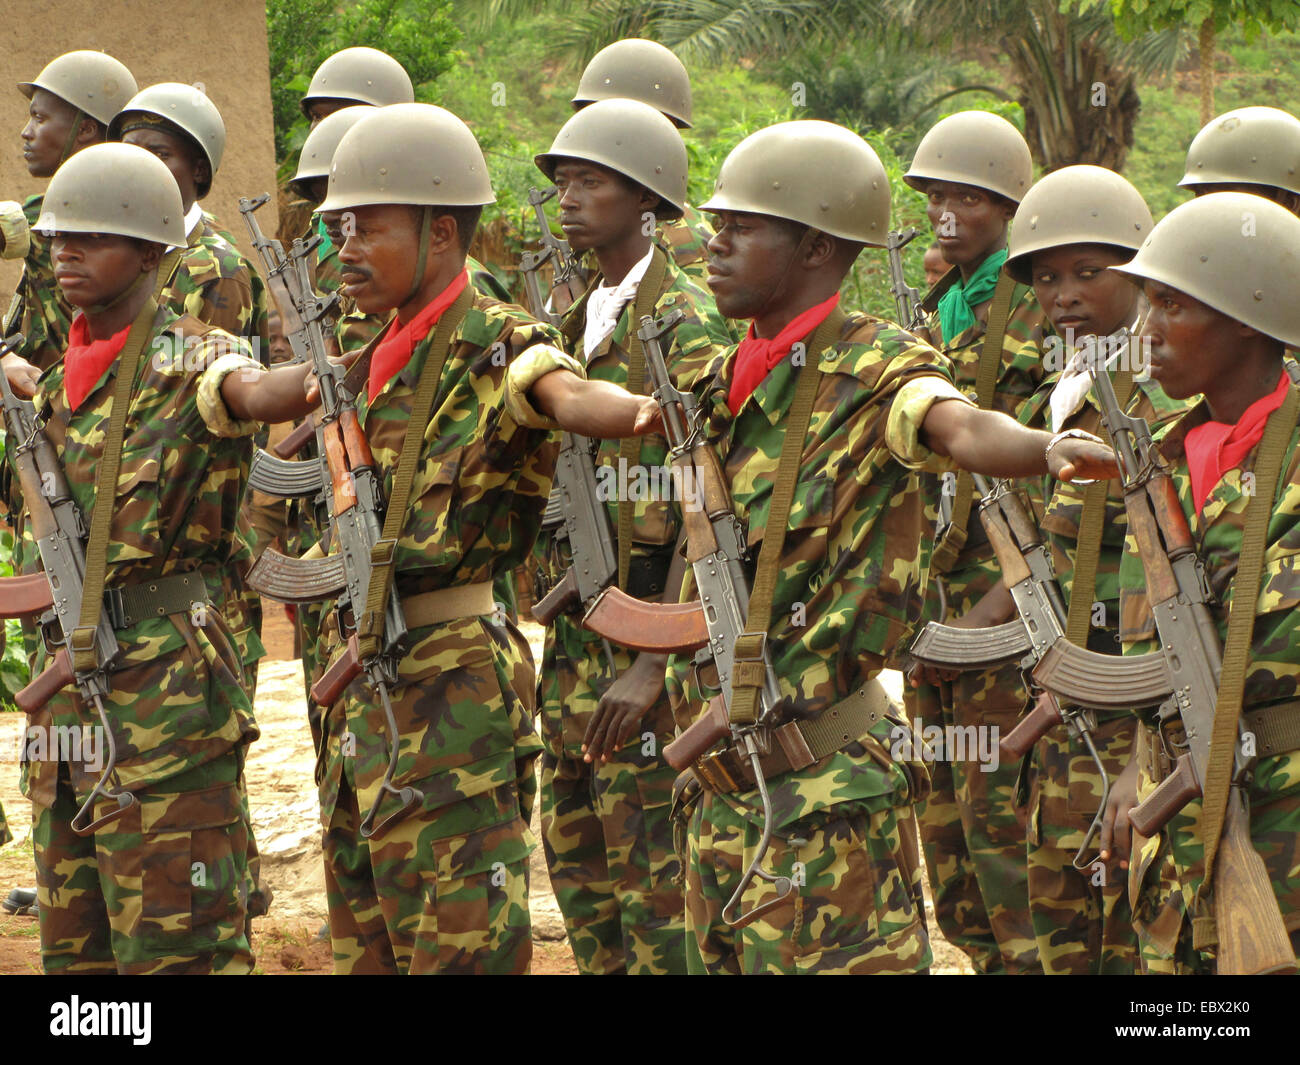 guard of honour of the burundian army at the festivities for the International Day of Human Rights (10 December - Stock Image